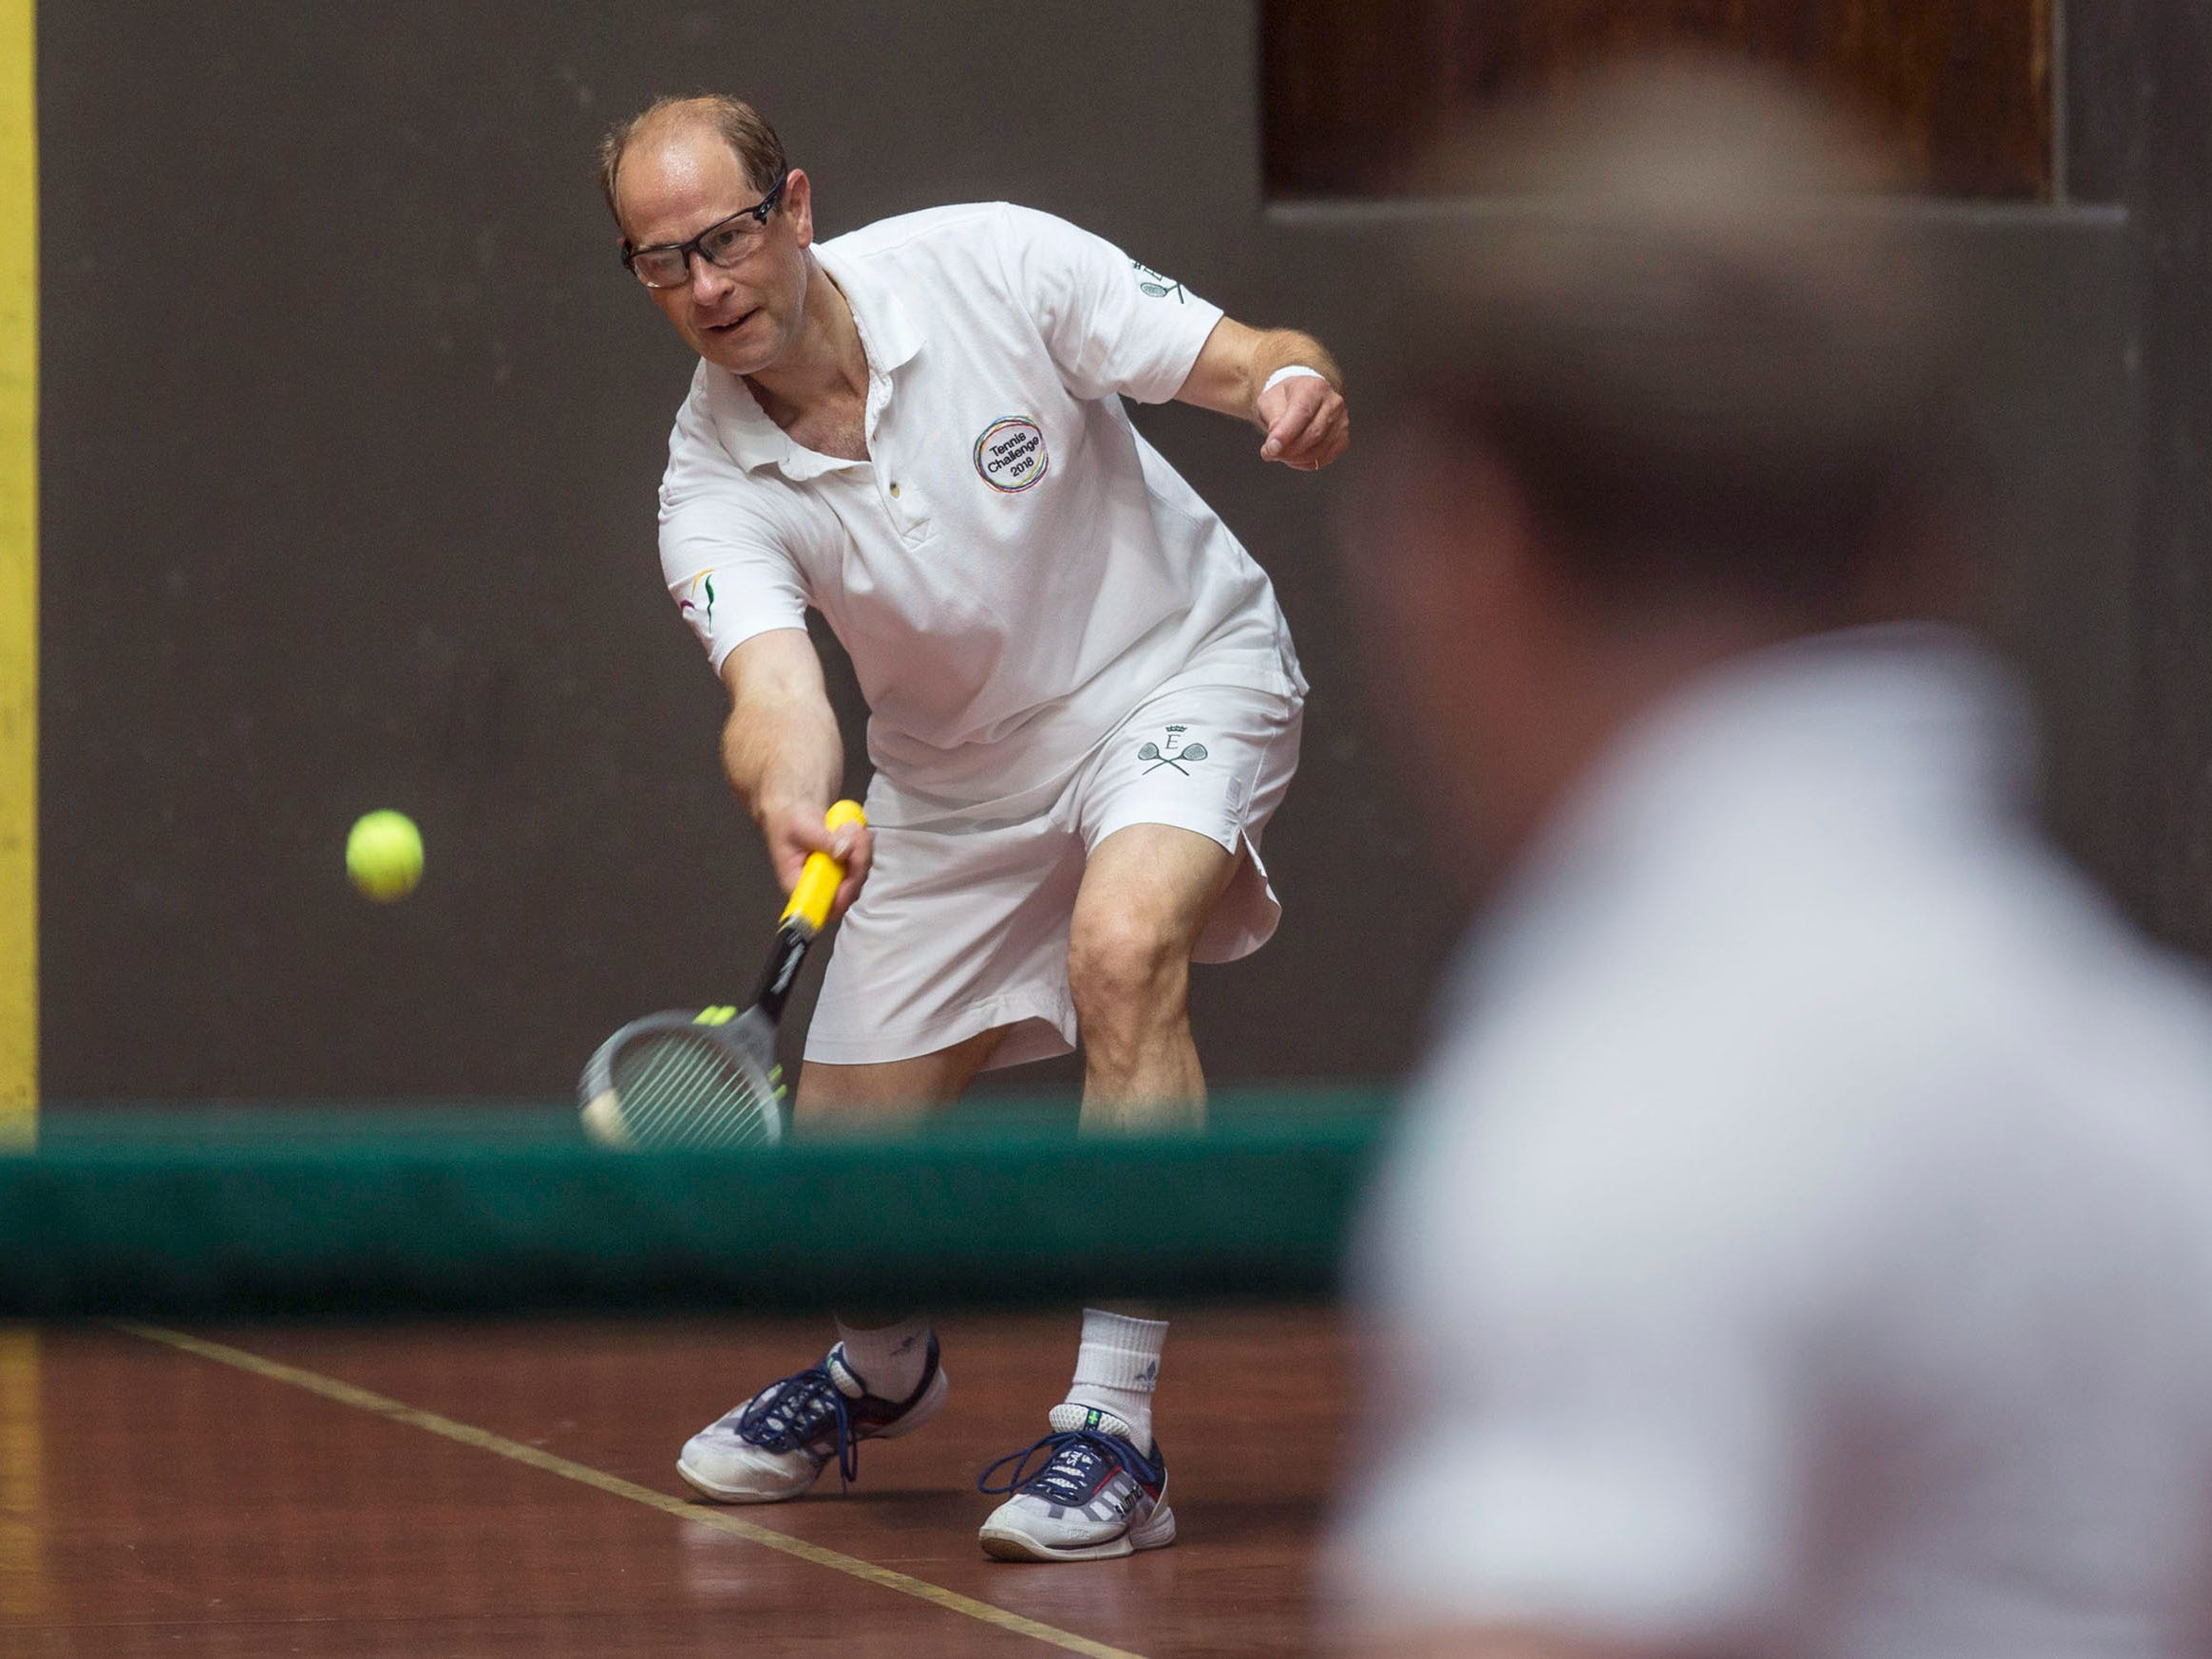 Prince Edward, Earl of Wessex, visits Georgian Court University during the Tennis Challenge 2018. The prince played Court Tennis on one of only nine courts in the country to bring awareness and support for his International Award.  Lakewood, NJ on Wednesday, September 13, 2018